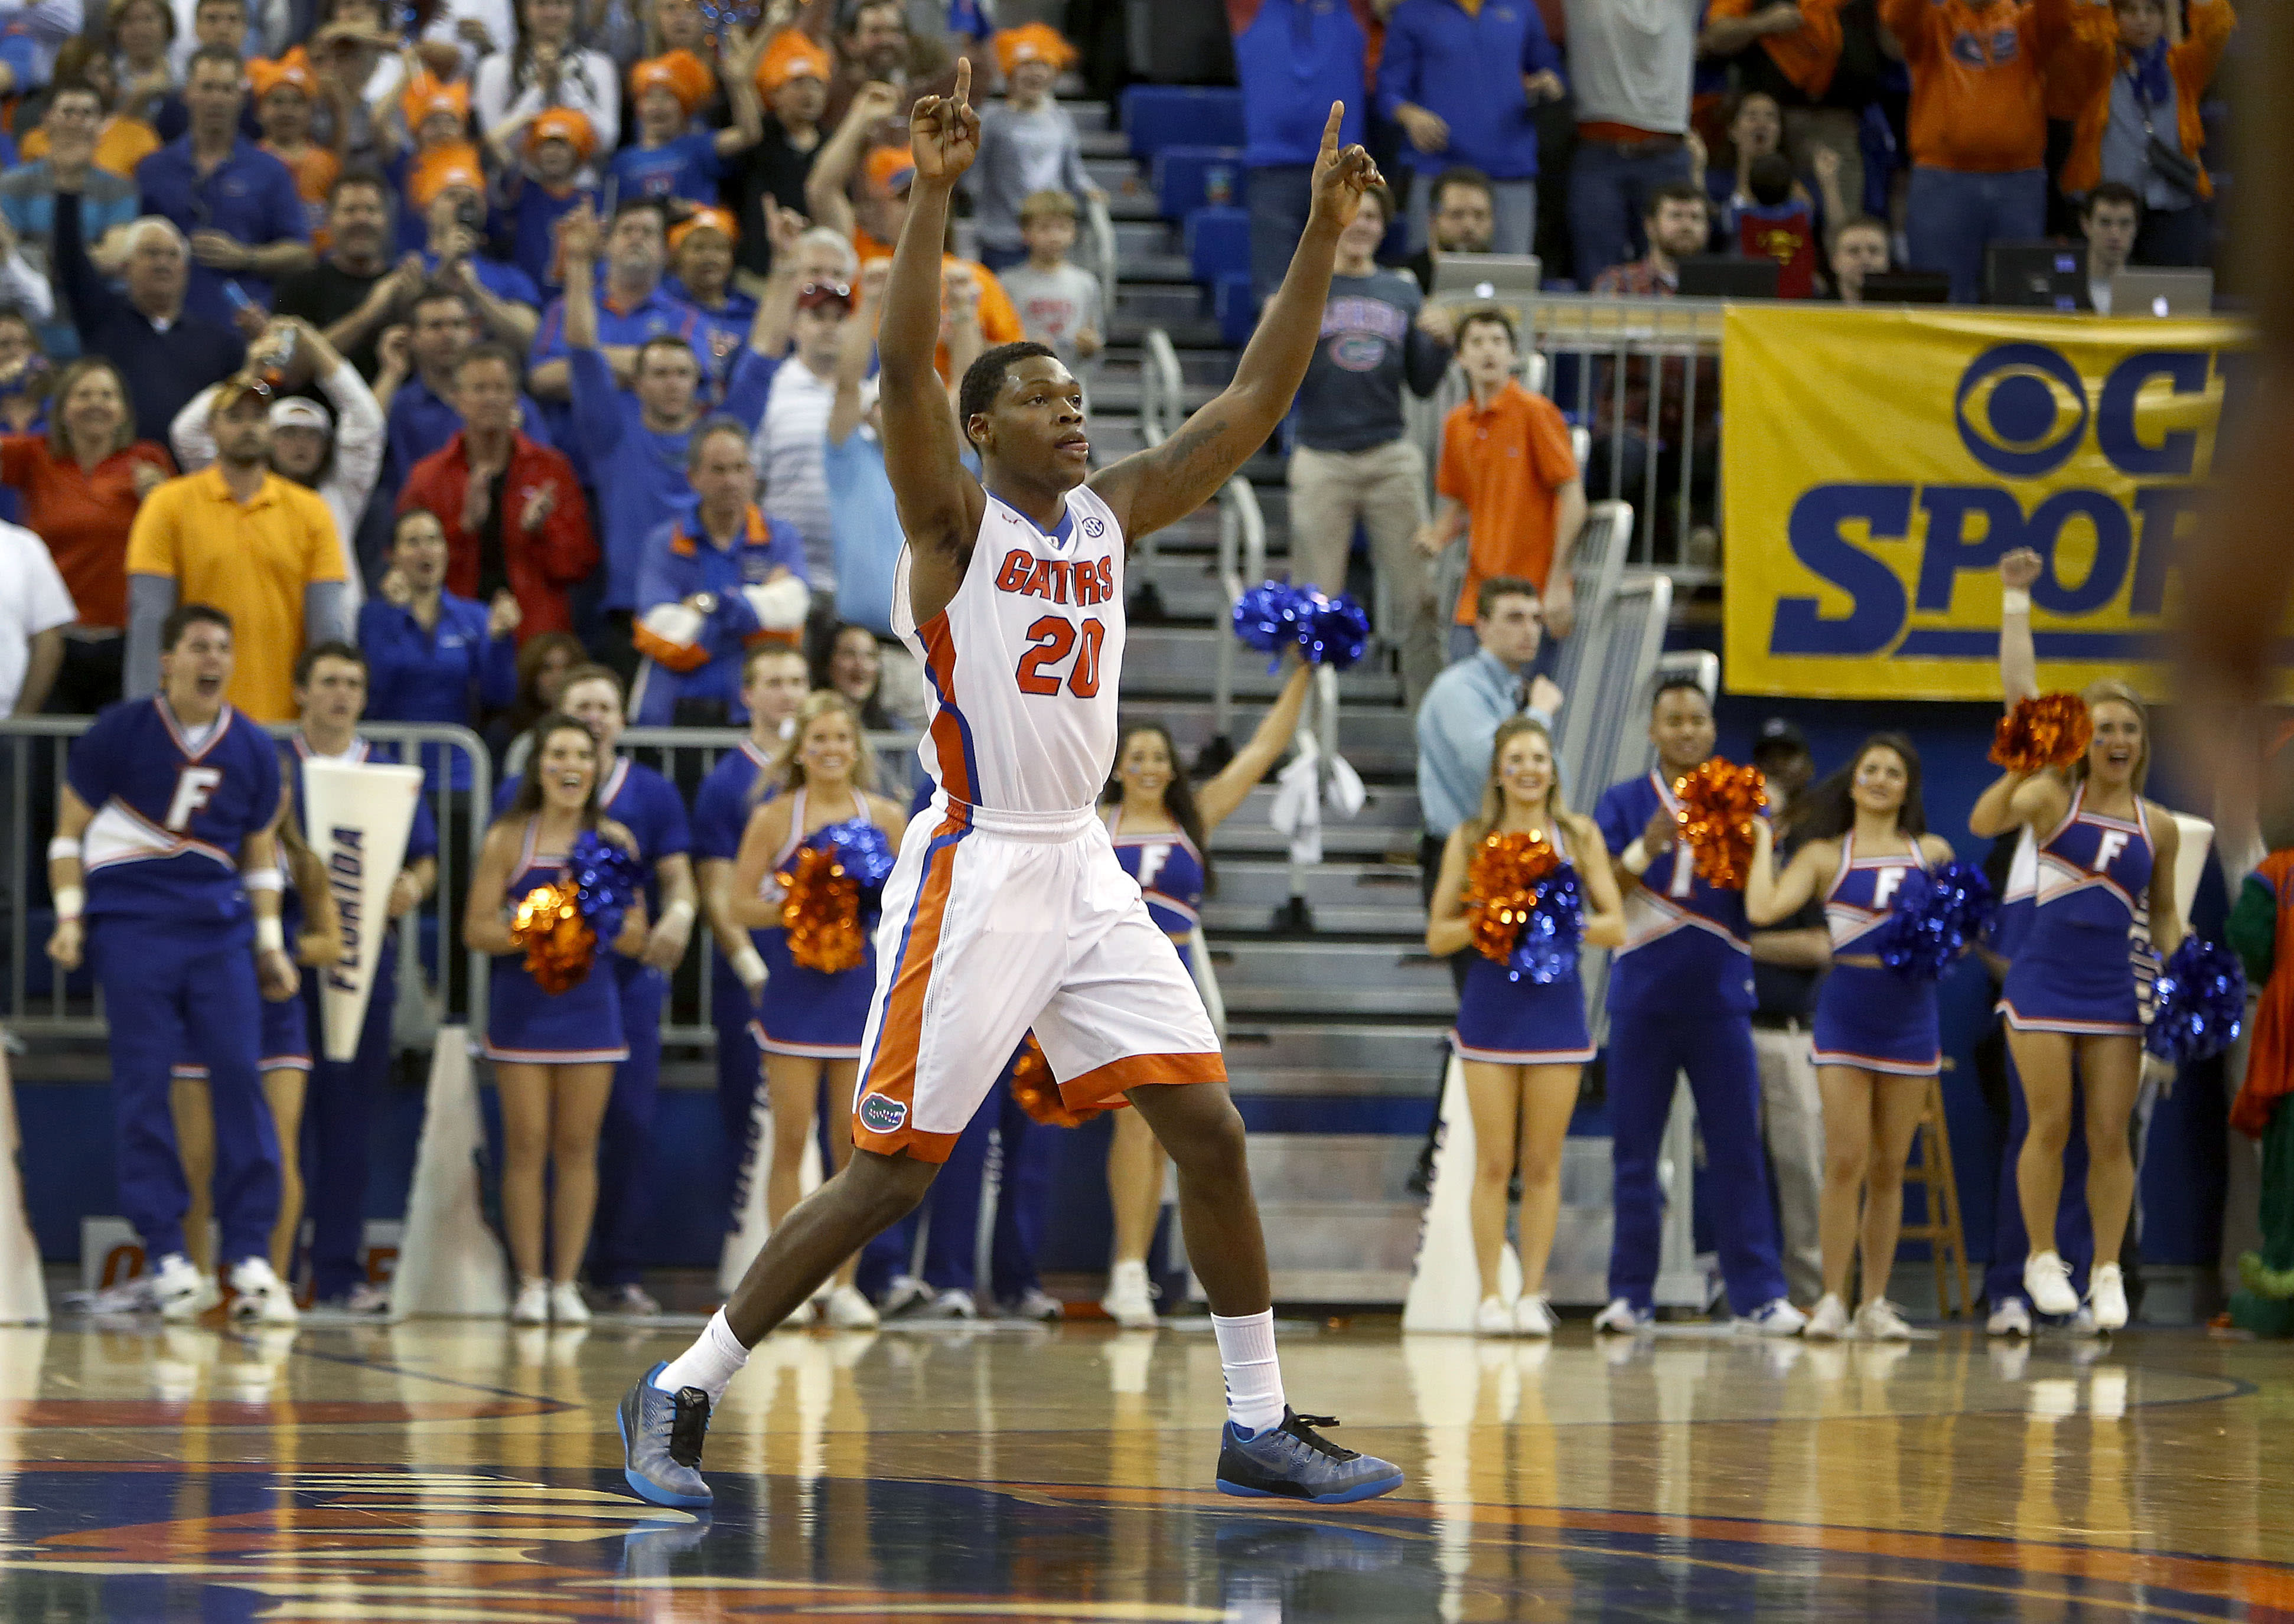 Frazier's free throws lift Florida over Arkansas, 57-56